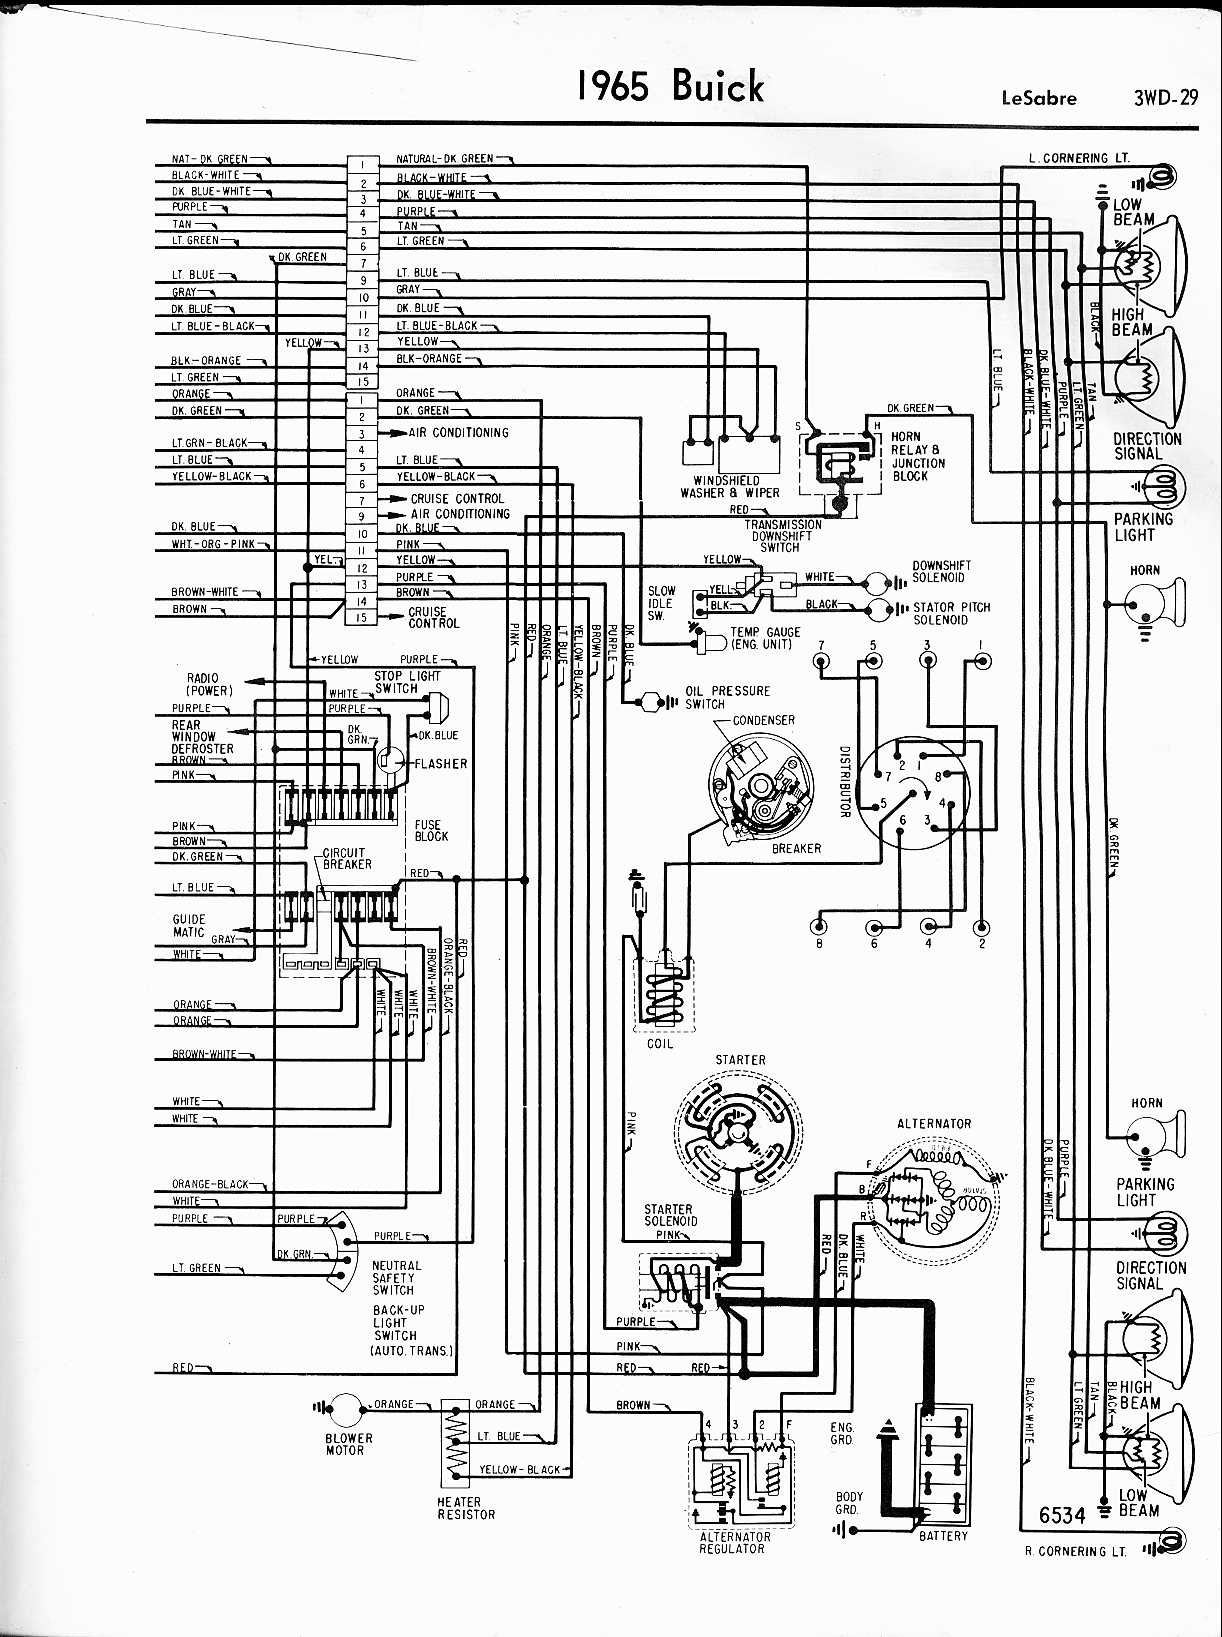 Buick Wiring Diagrams Free from detoxicrecenze.com